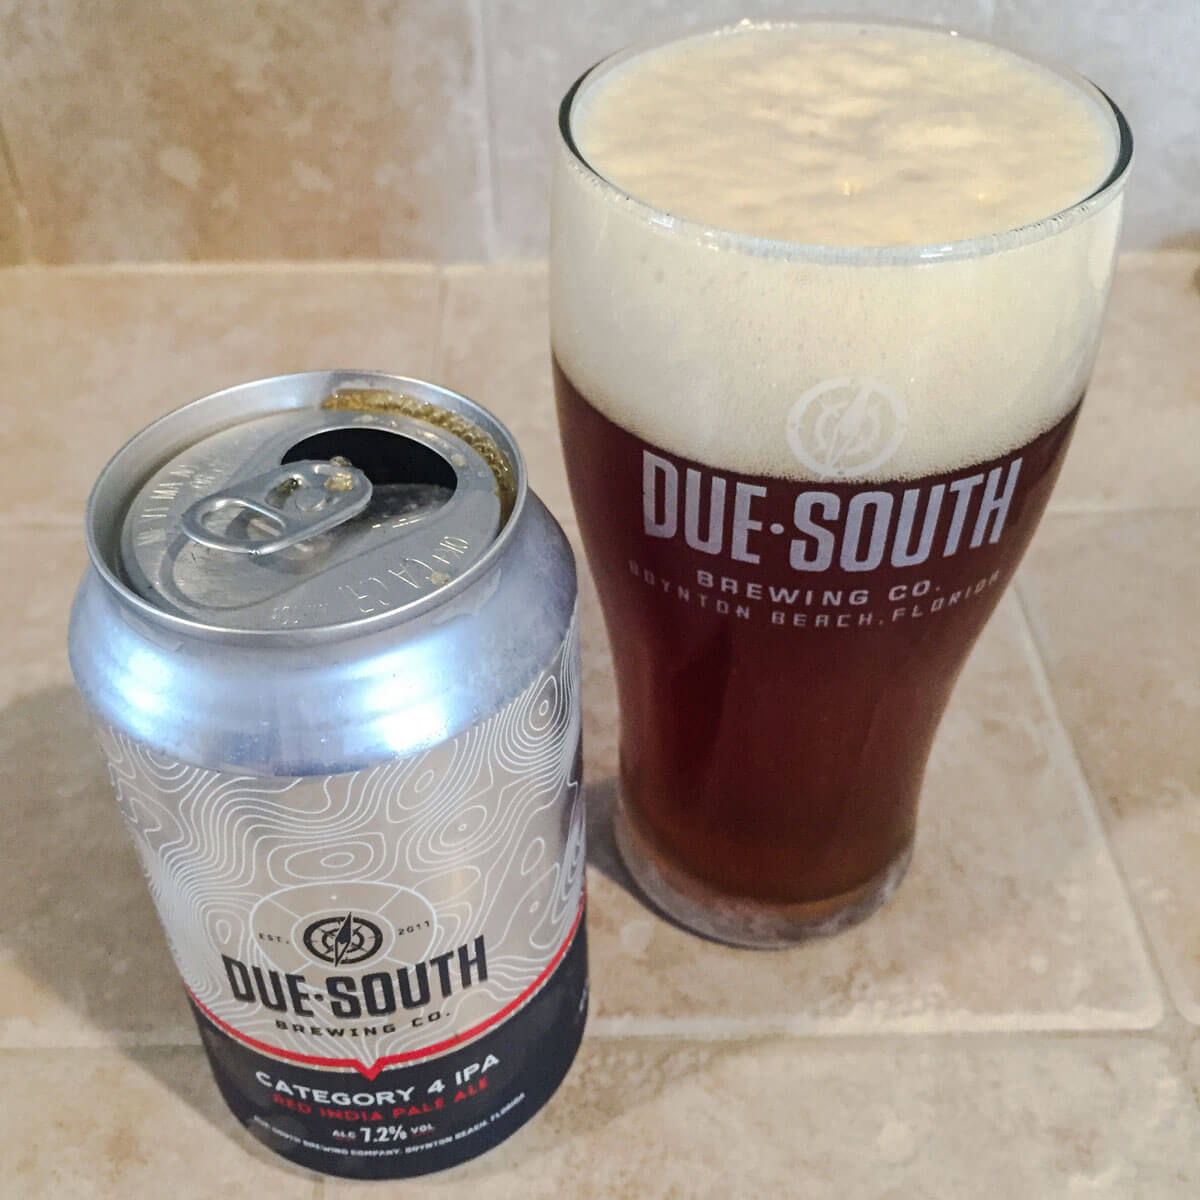 Category 4, an American Red Ale by Due South Brewing Co.